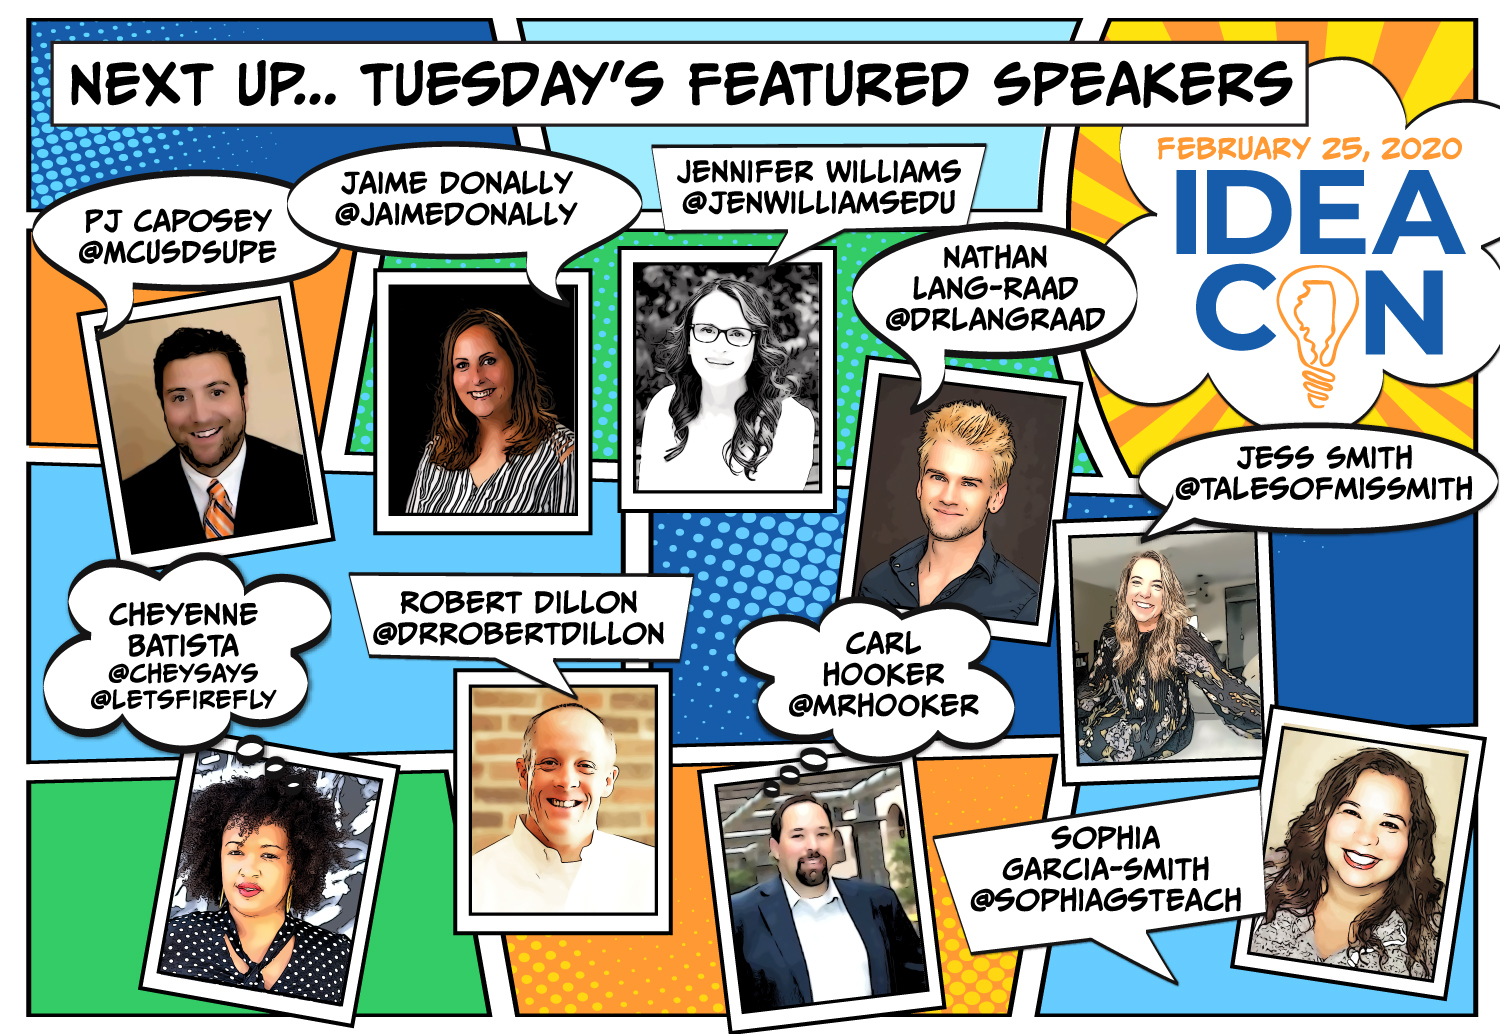 Tuesday Featured Speakers